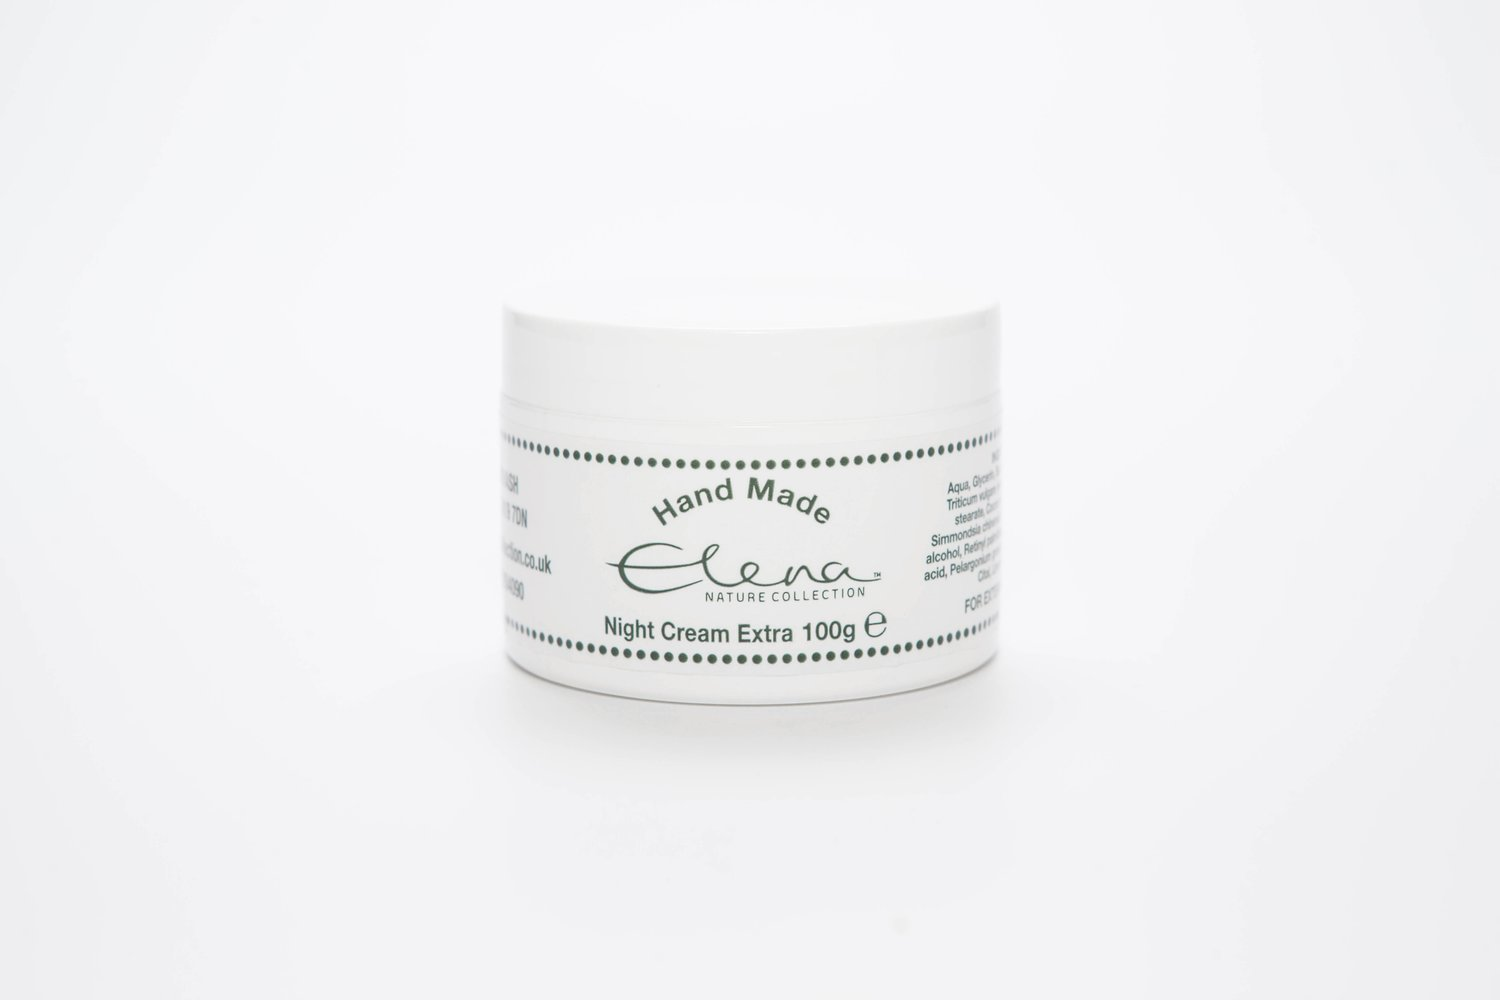 Night Cream Extra 100g